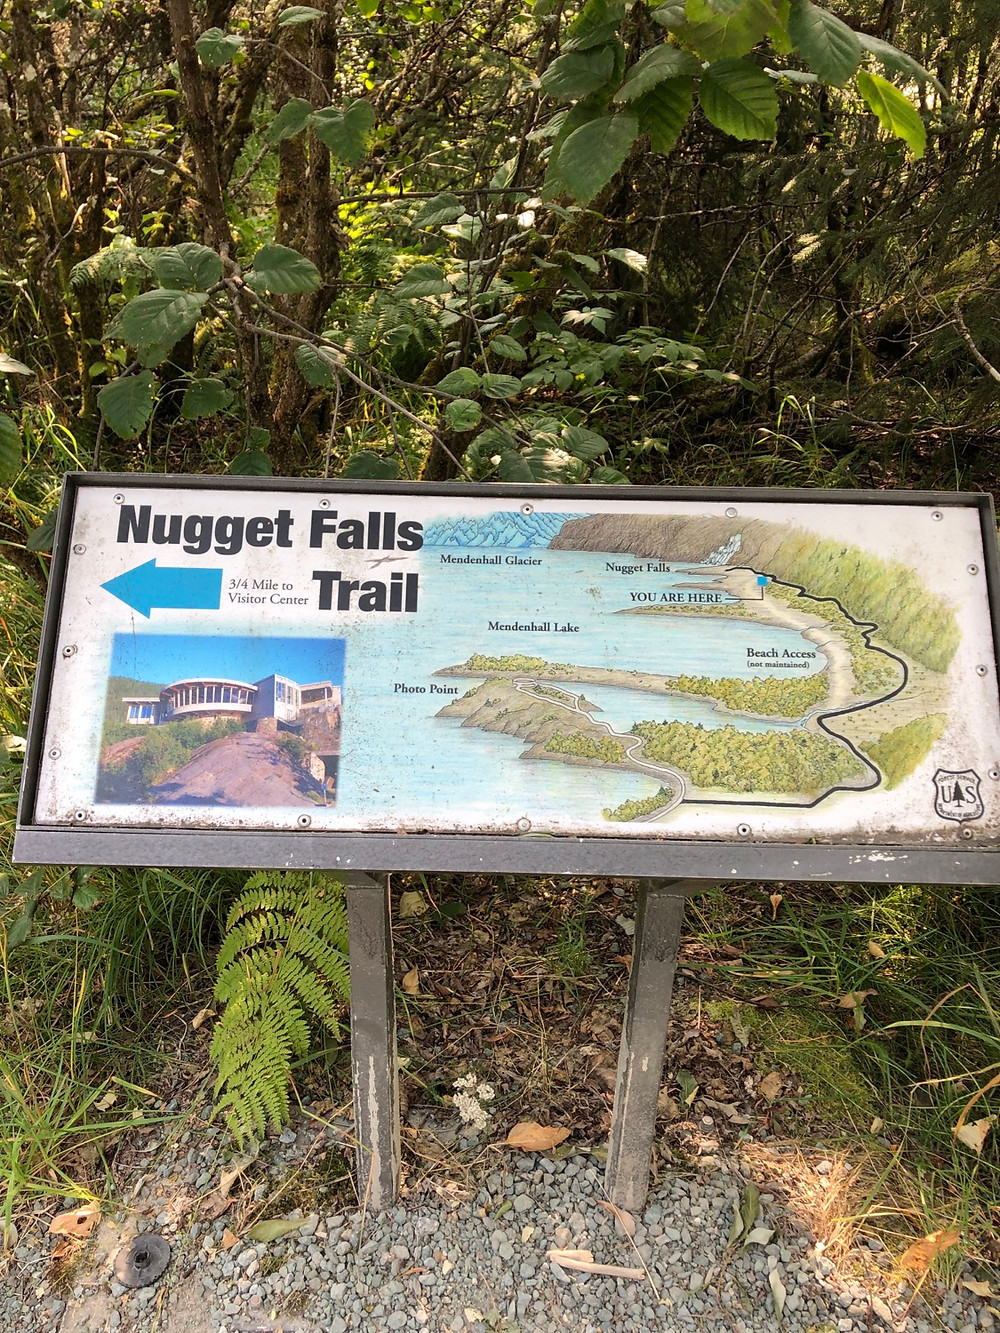 Signage showing Nugget Falls Trail